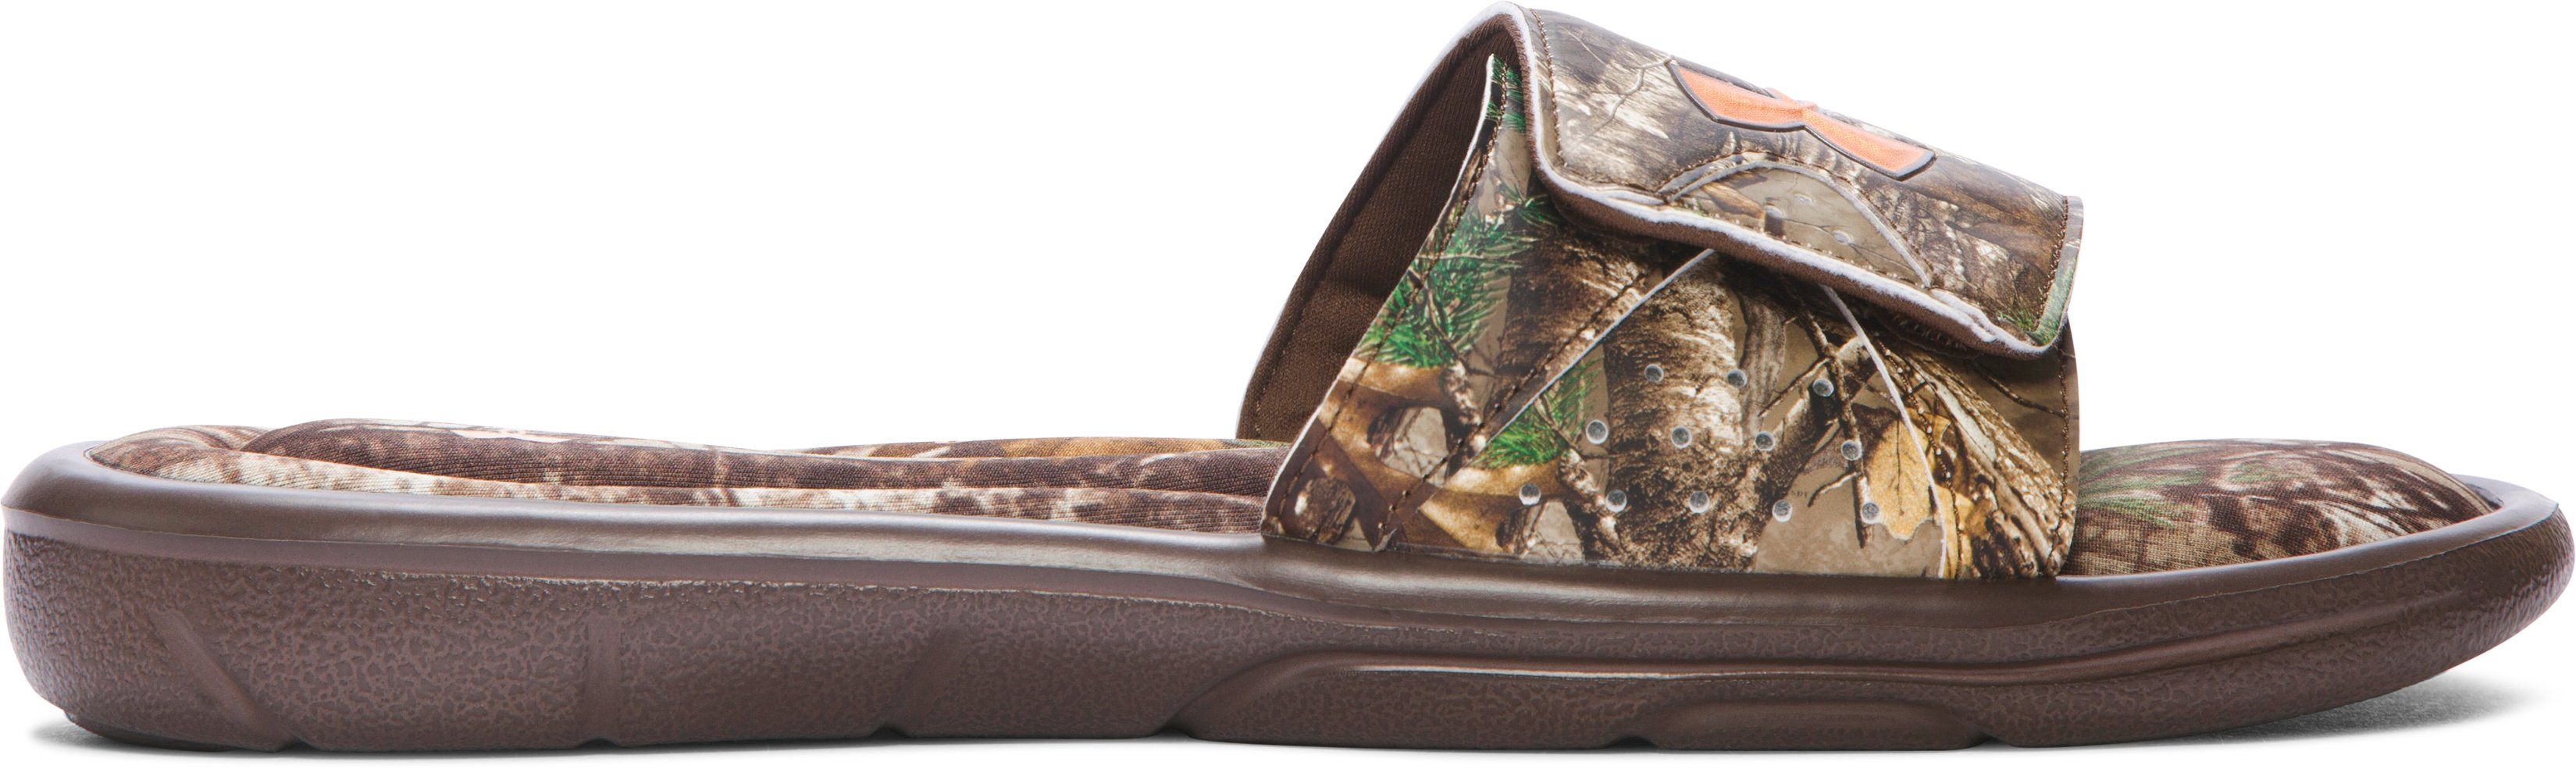 Men's UA Ignite Camo Slide Sandals, REALTREE AP-XTRA